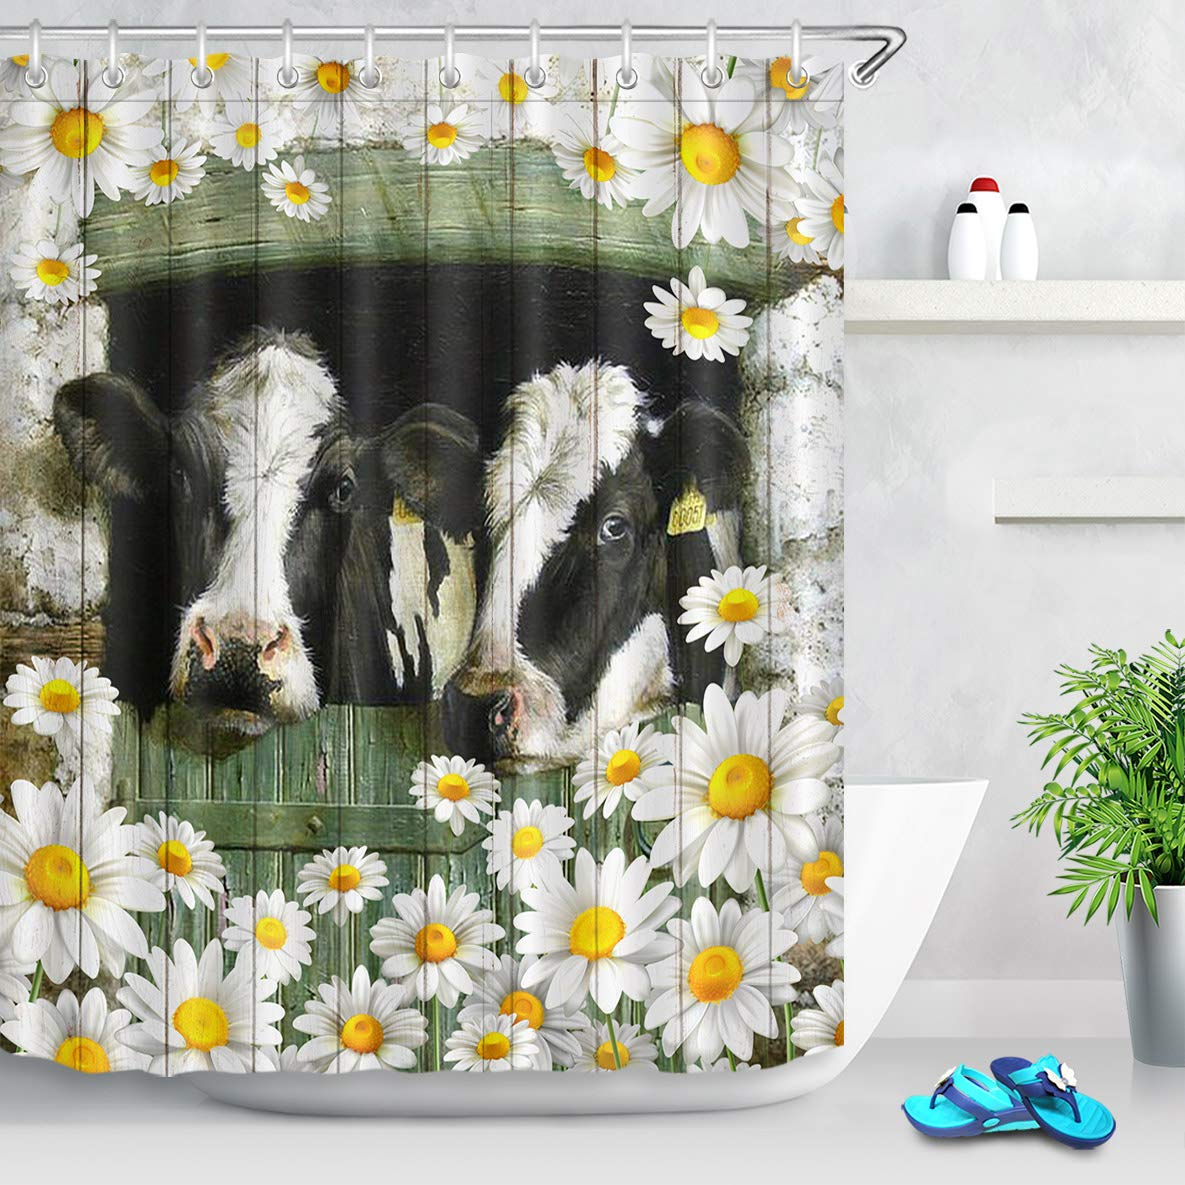 lb farm cow daisy floral shower curtain rustic wood door white flower farmhouse shower curtains sets country style backdrop for bathtub 59x70 inch